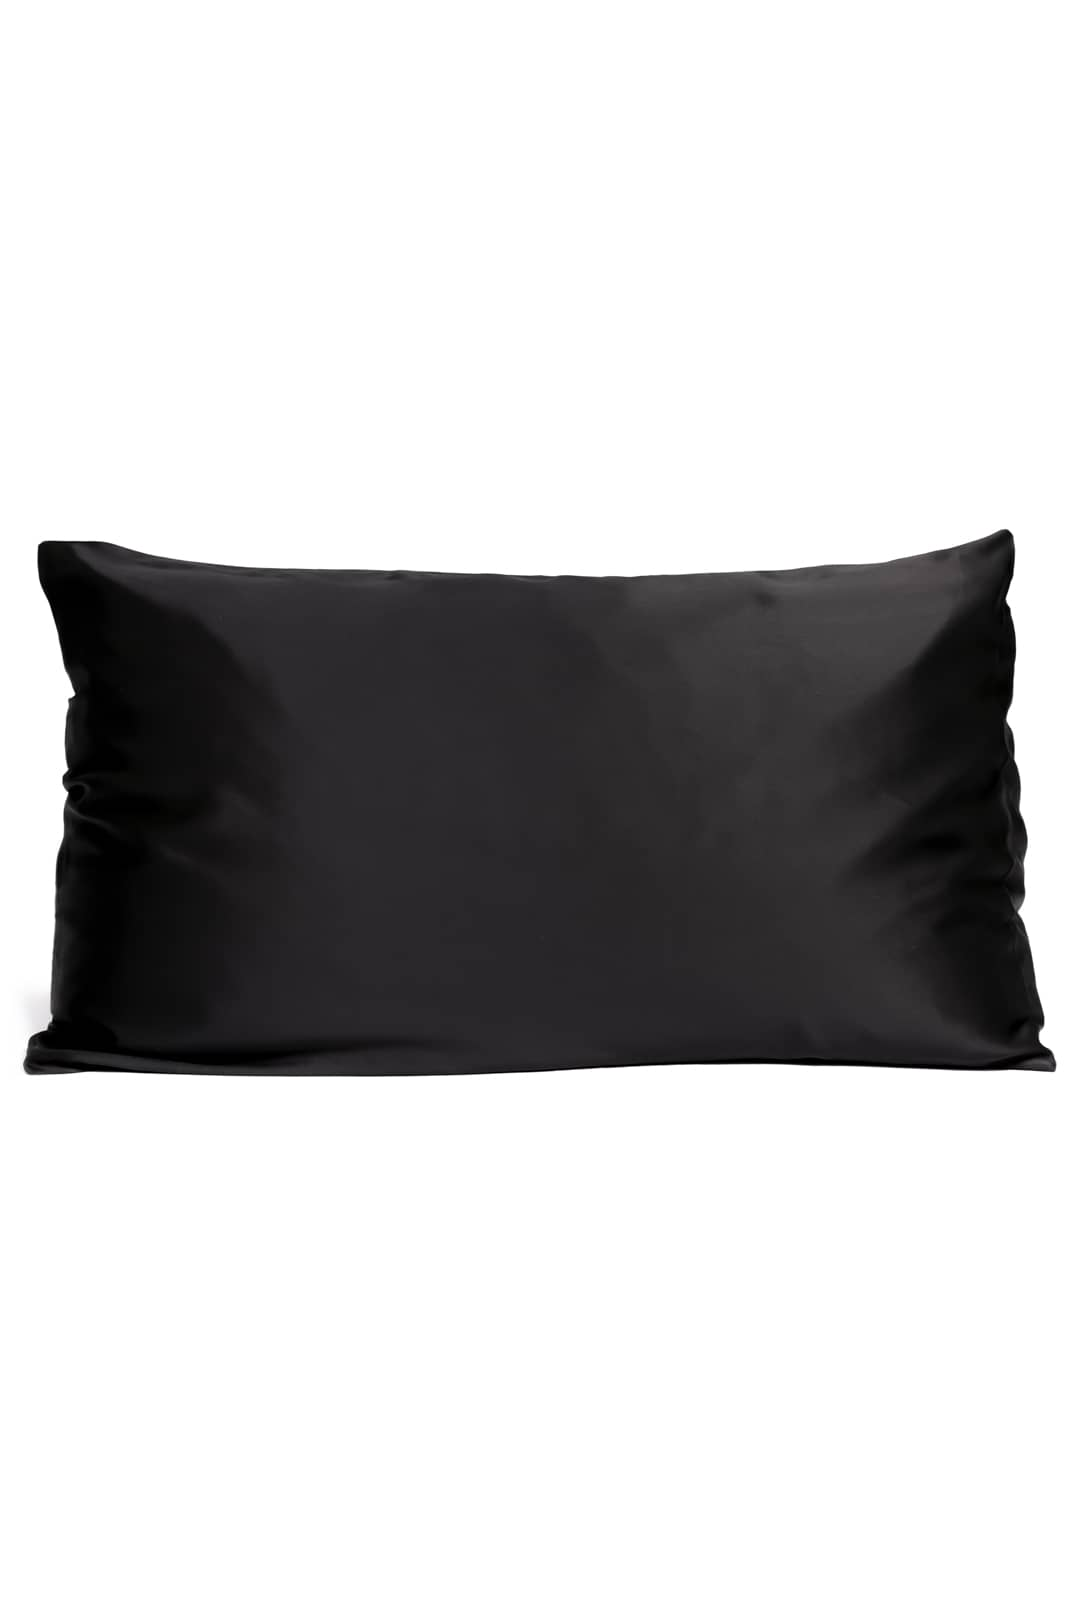 Tranquil Dreams 19 Momme 100% Pure Mulberry Silk Pure Mulberry Silk Pillowcase - Exceptional Value